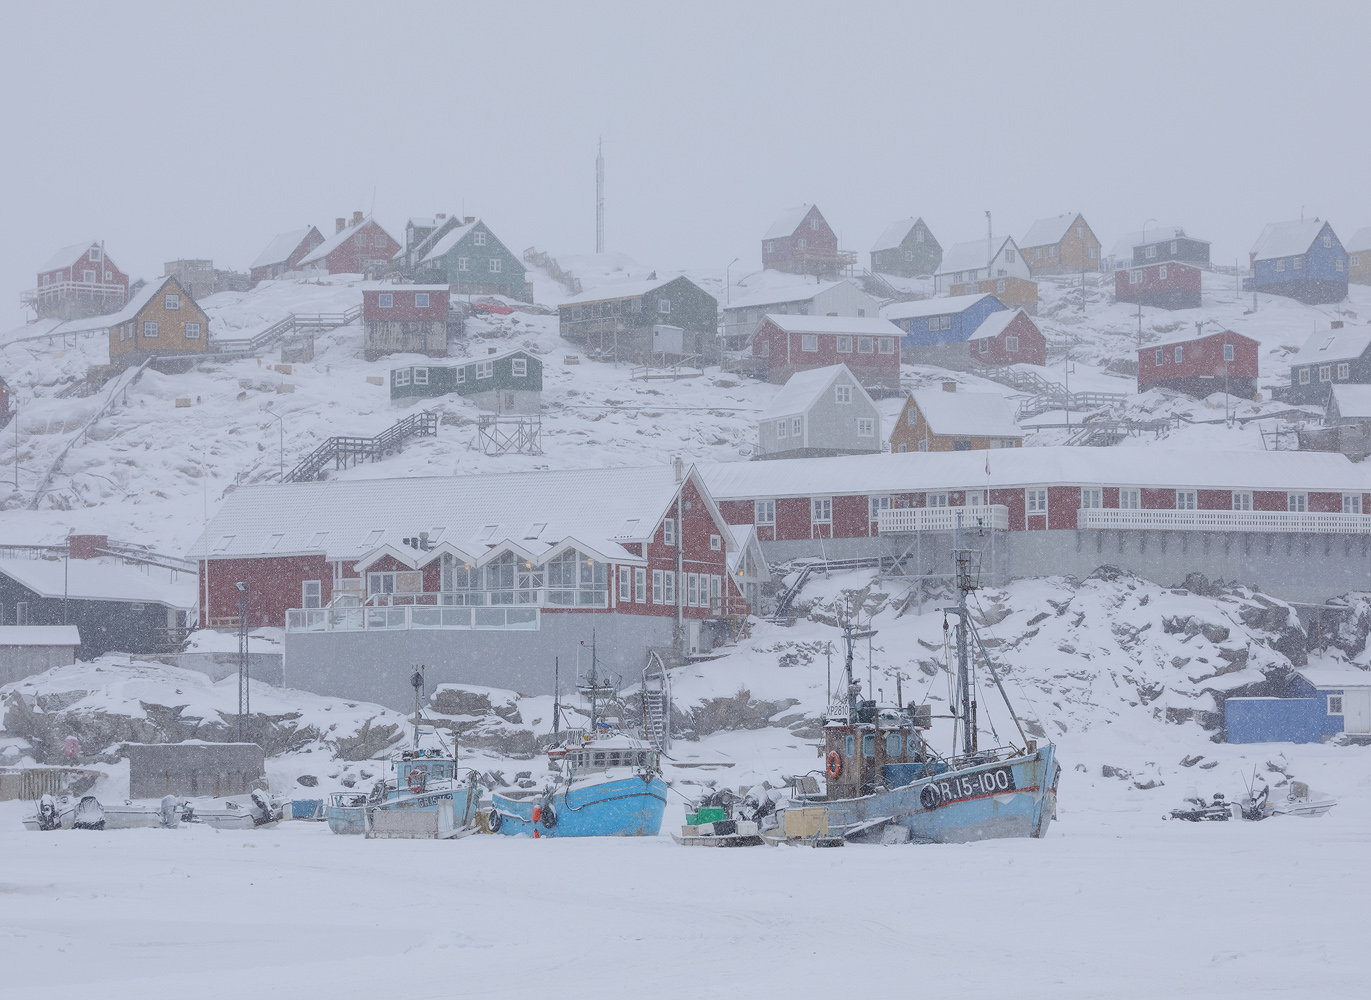 Bleak conditions upon my arrival in Uummannaq